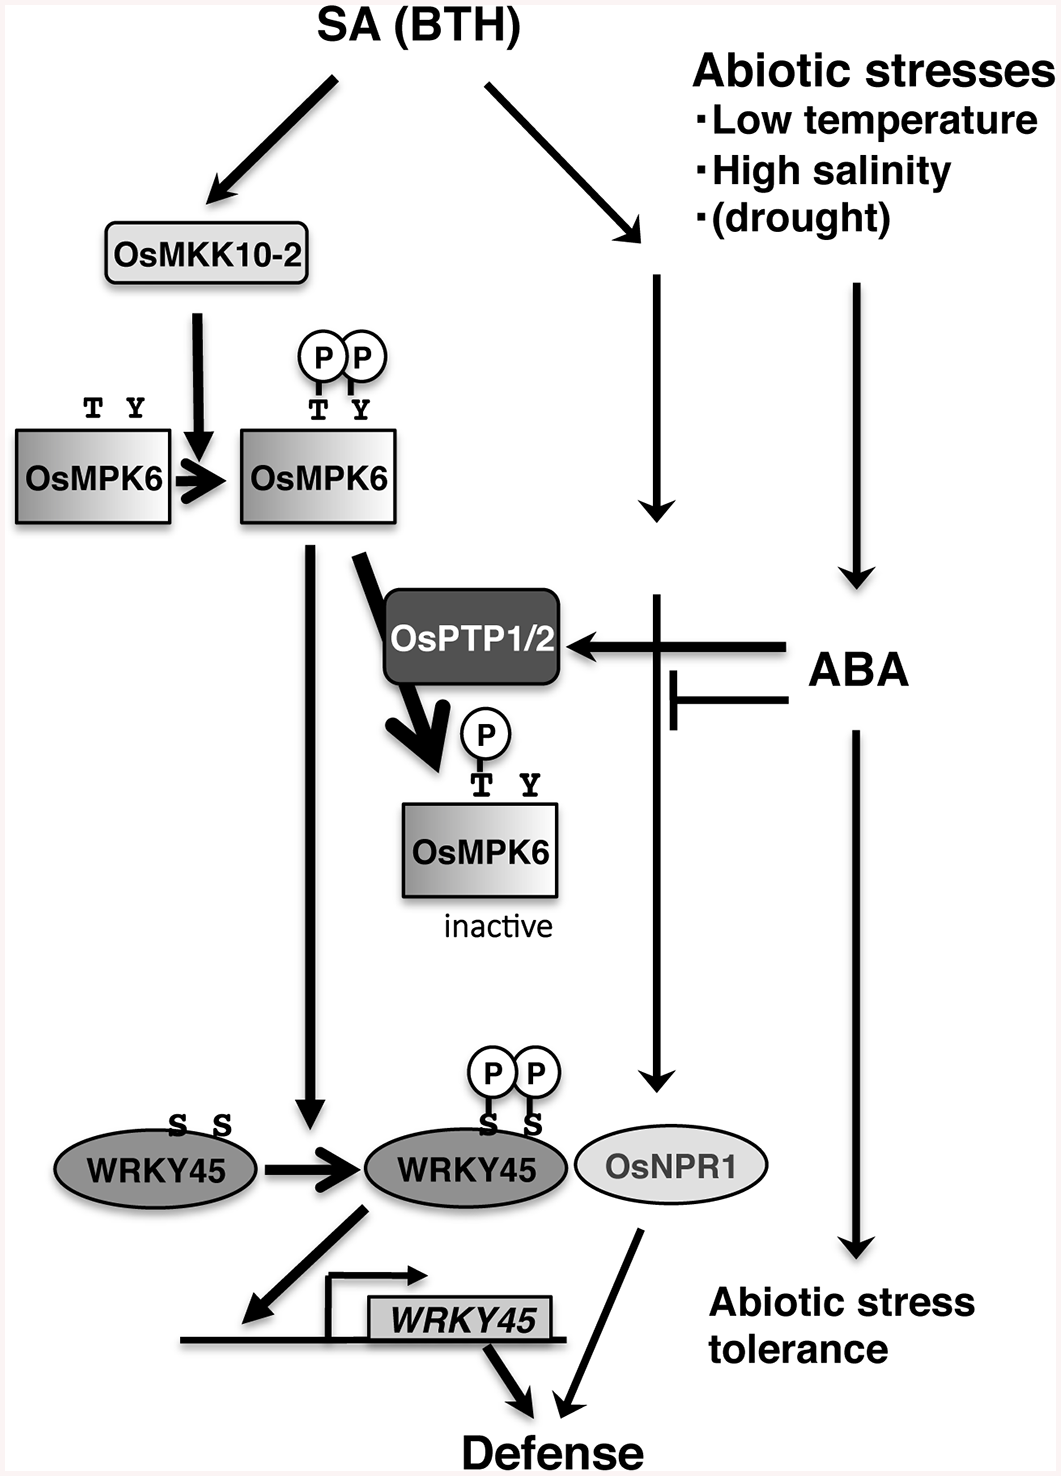 Proposed model for the mechanism underlying SA–ABA crosstalk through OsPTP1/2 against the OsMPK6–WRKY45-mediated SA pathway of the rice defence program.